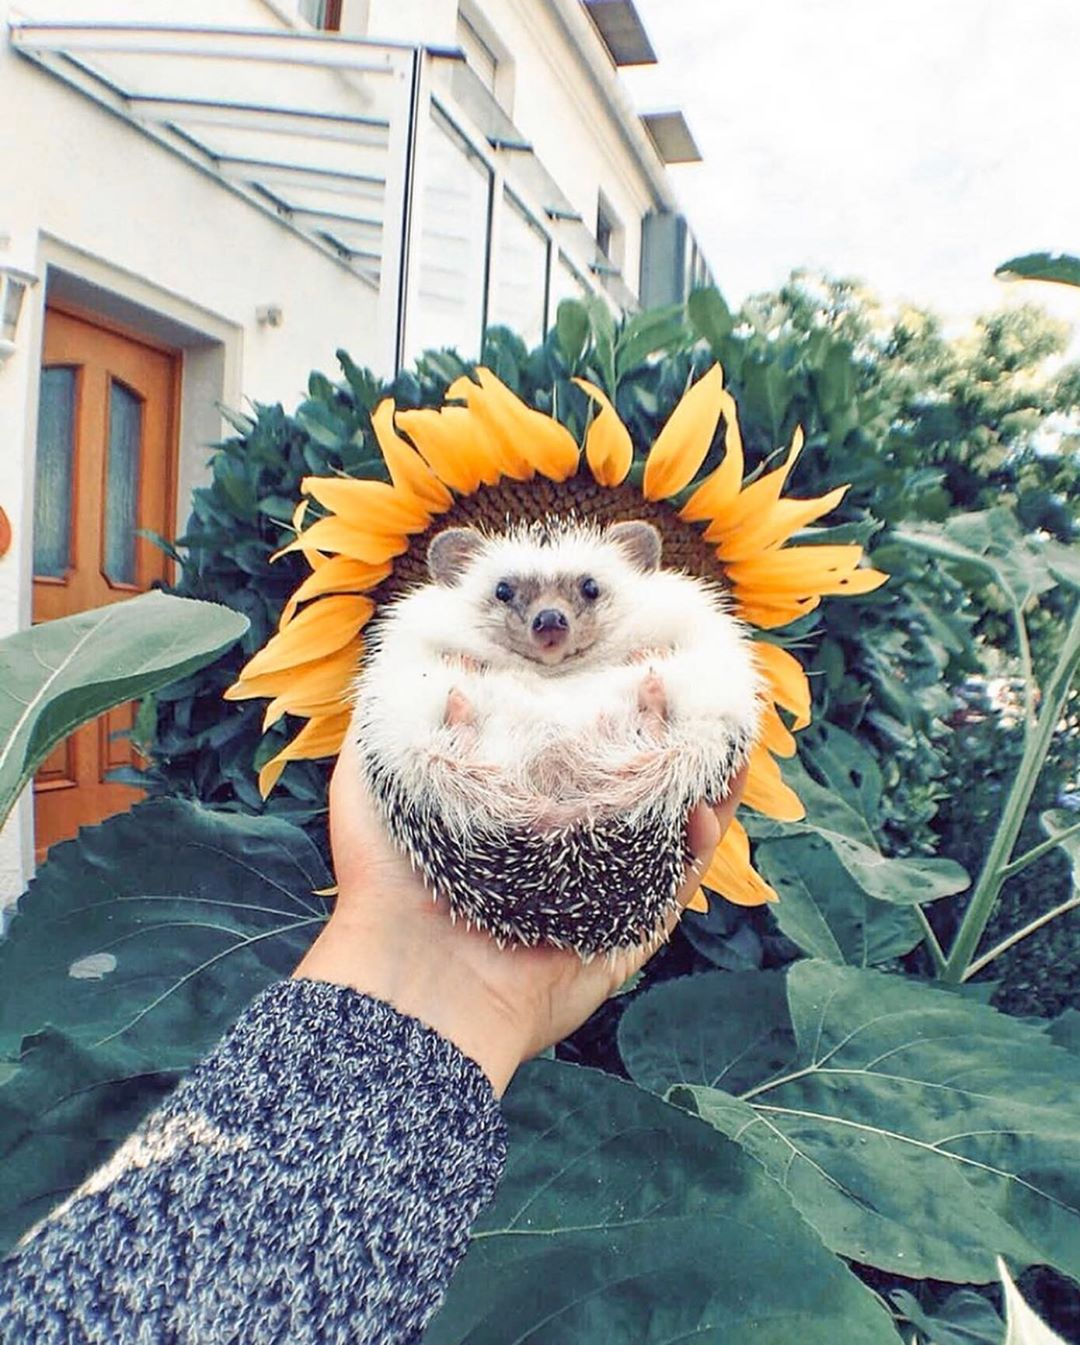 Pictures in sunflowers